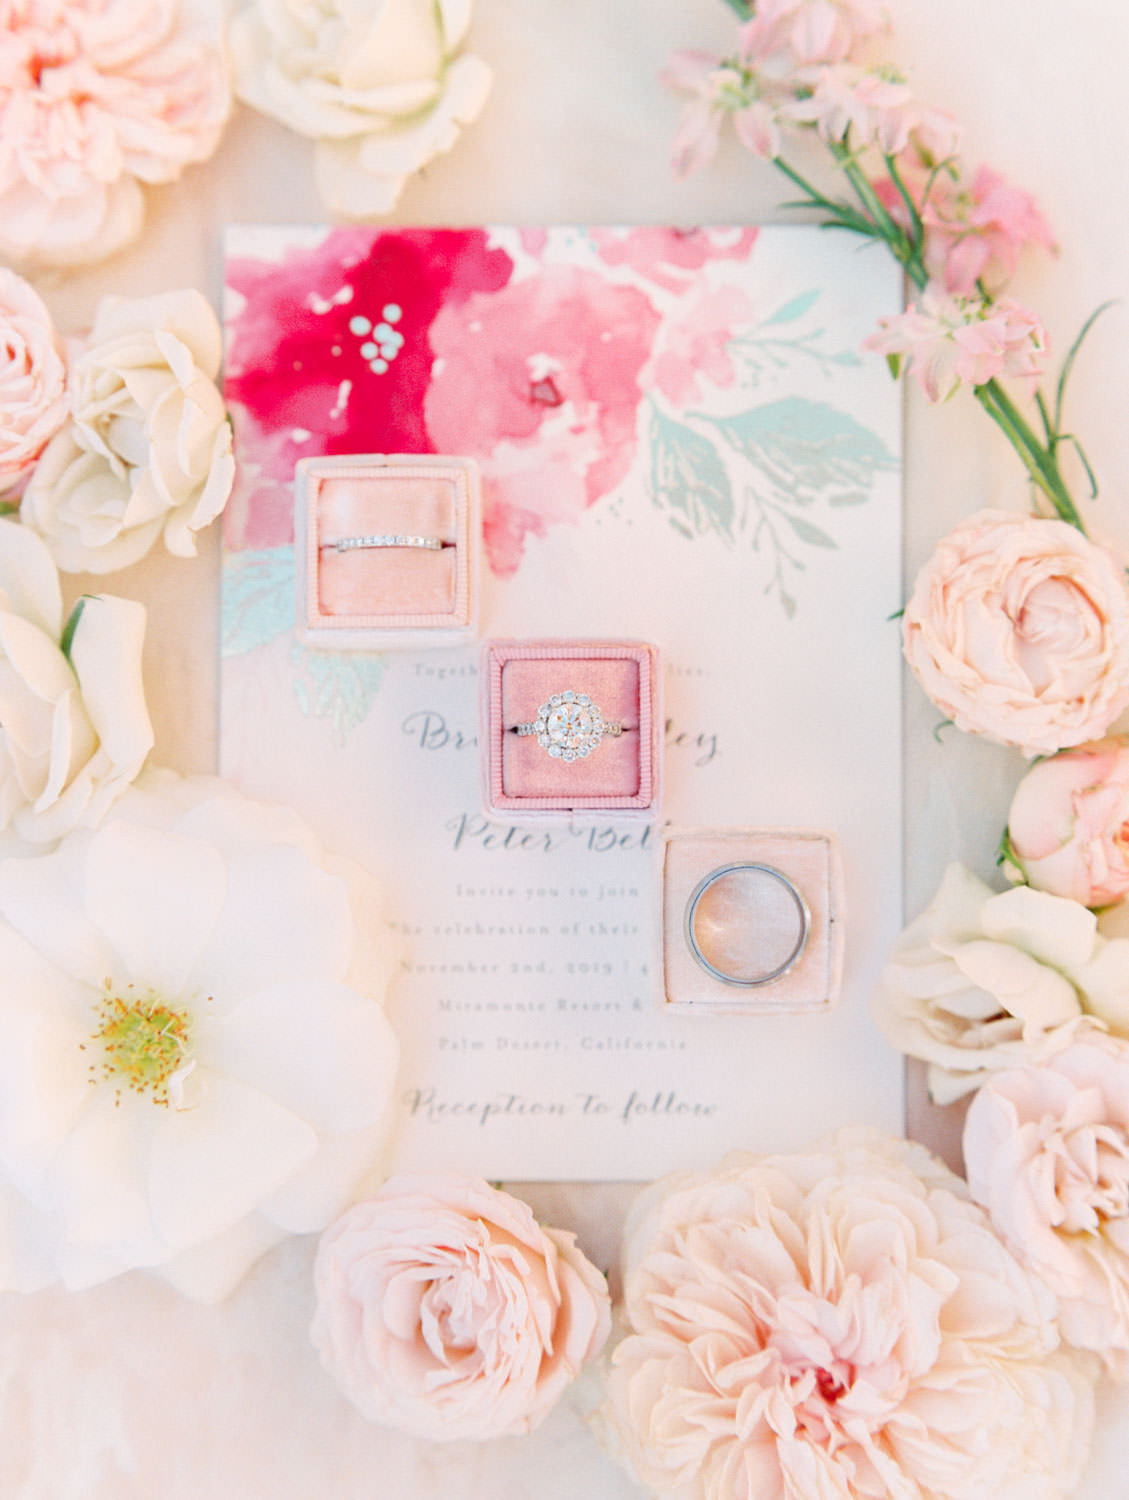 Wedding rings styled in pink Mrs Box velvet ring boxes. Minted pink floral wedding invitation suite with gold foil press. Film photography by Cavin Elizabeth.